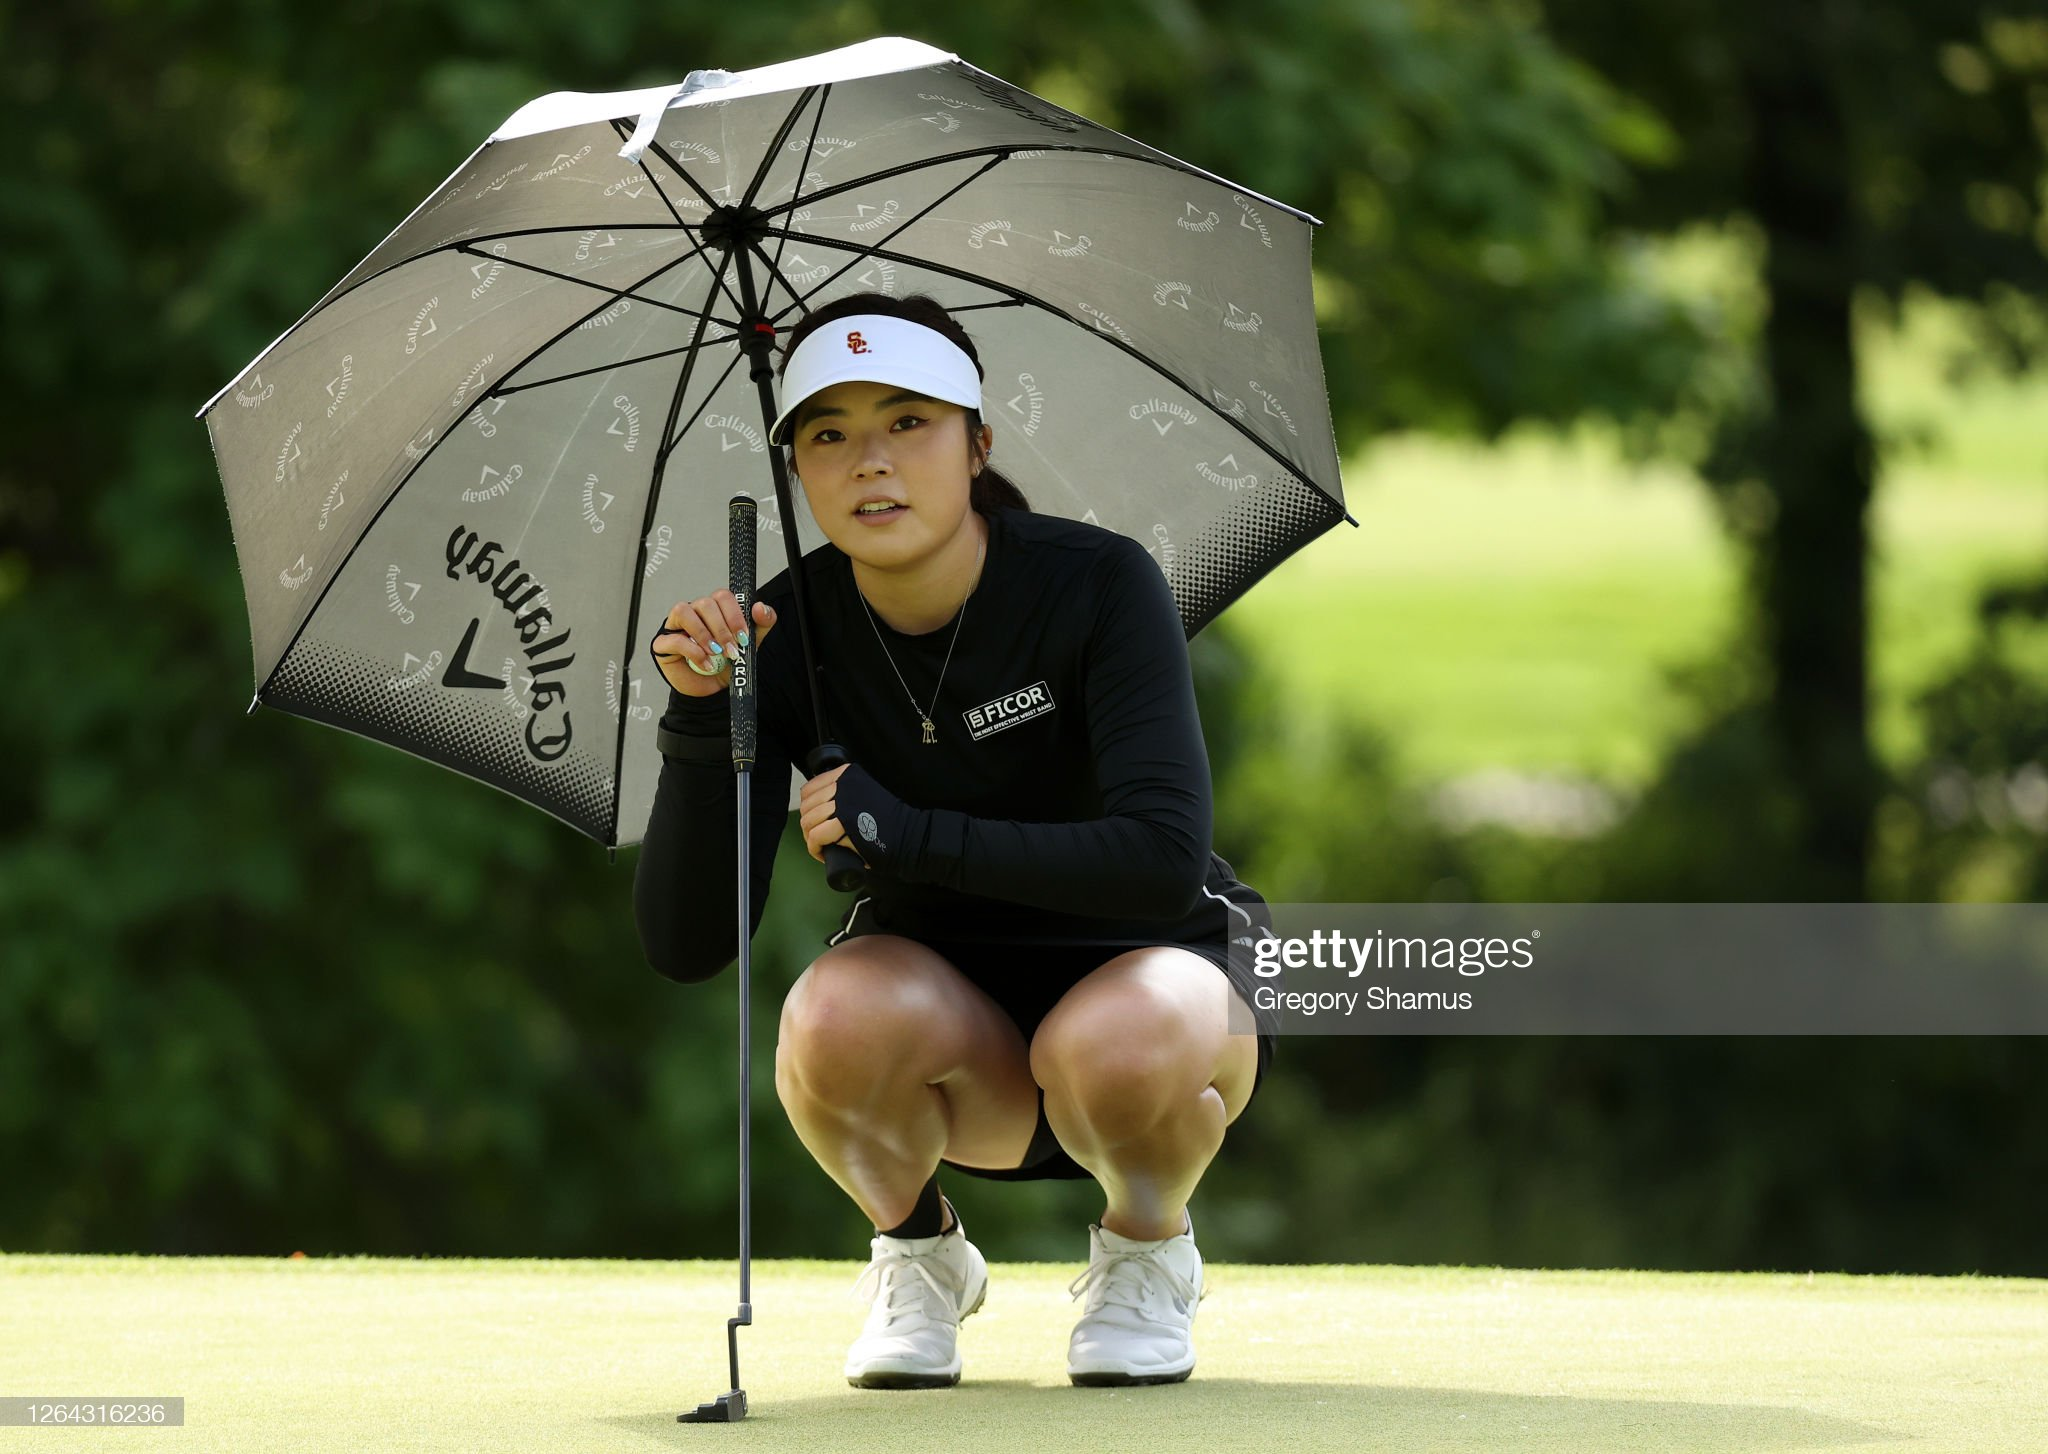 https://media.gettyimages.com/photos/robynn-ree-lines-up-a-putt-on-the-eighth-hole-during-the-first-round-picture-id1264316236?s=2048x2048